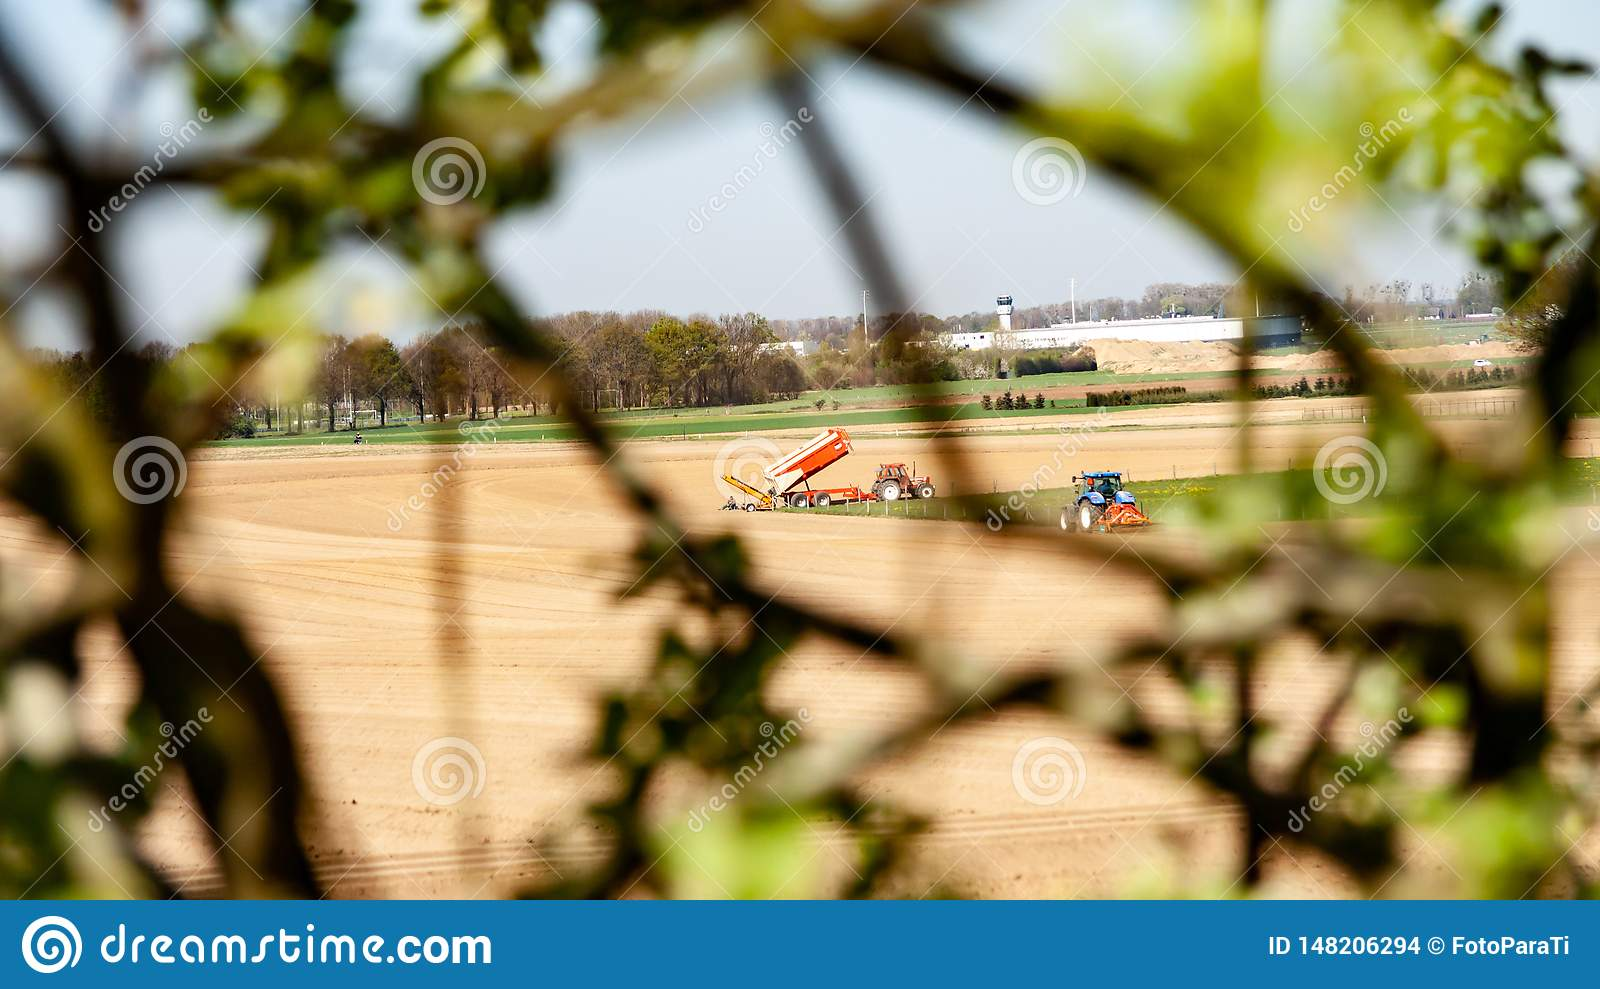 Tractors working on farmland to plant vegetables seen through the branches of a tree